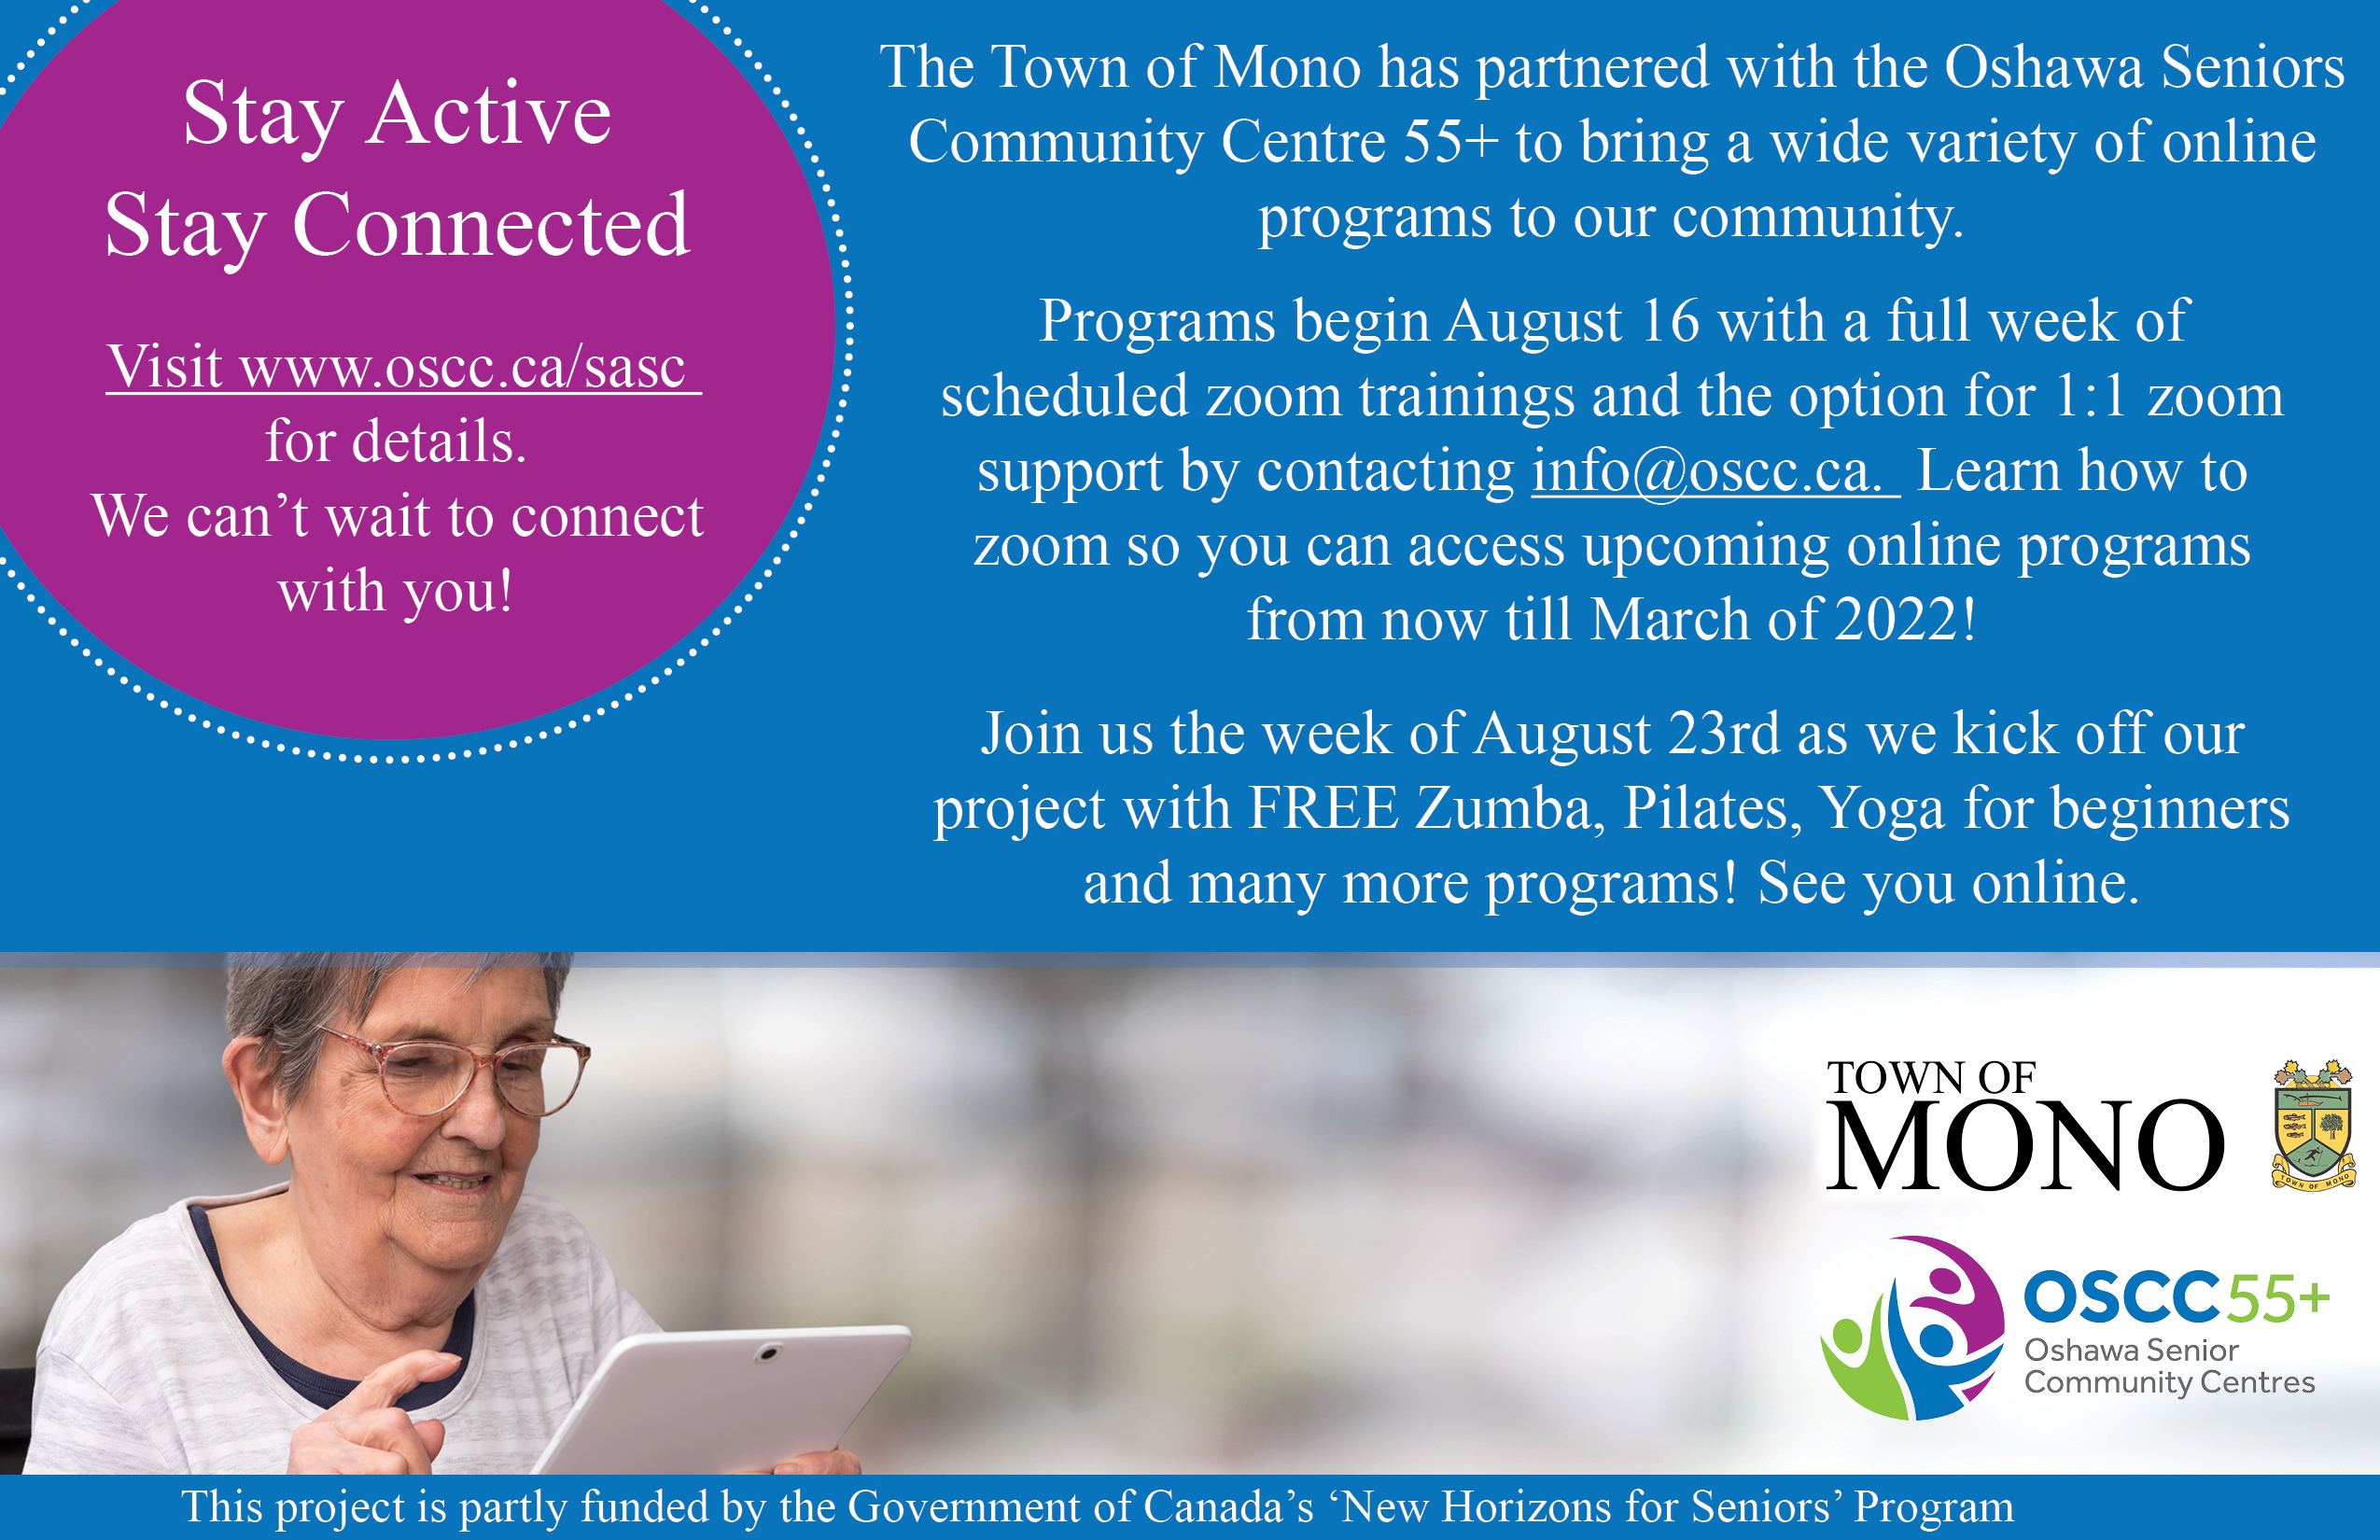 Oshawa Senior Community Centre and Town of Mono online senior summer program promotional image. Contains text reproduced in post.